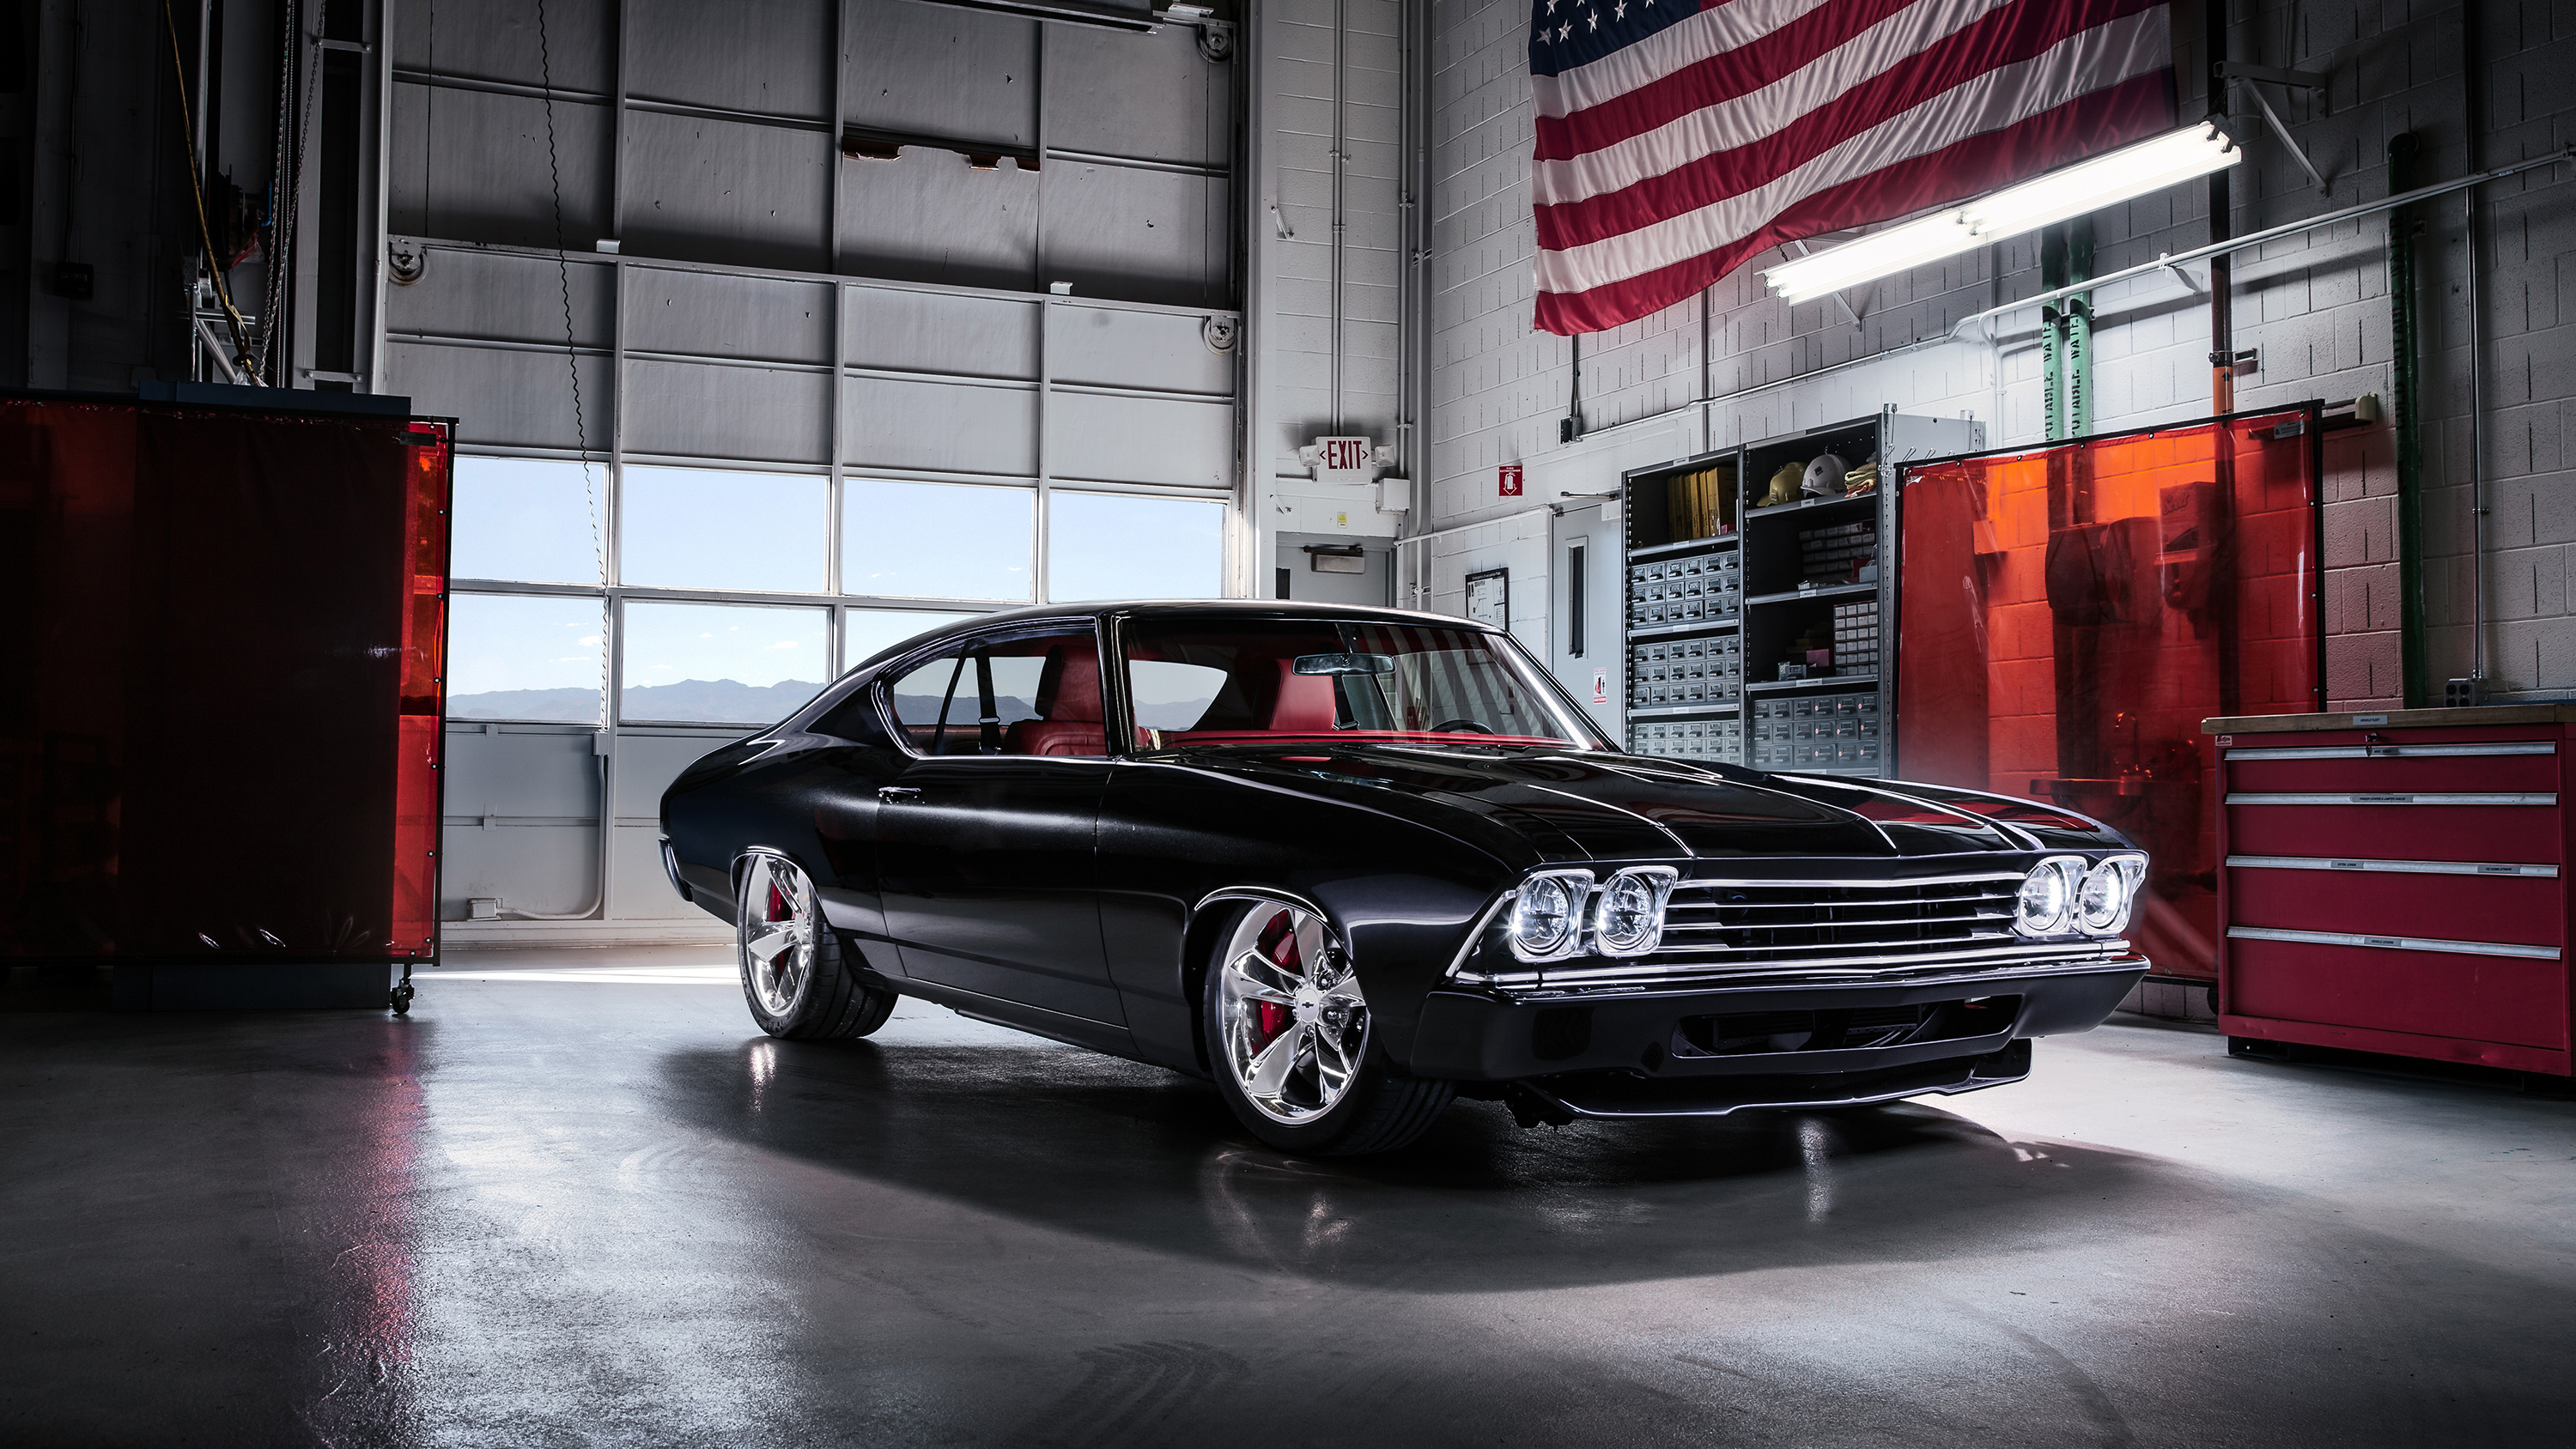 Chevy Chevelle 2016 >> Chevrolet Chevelle Classic Wallpaper | HD Car Wallpapers | ID #7168